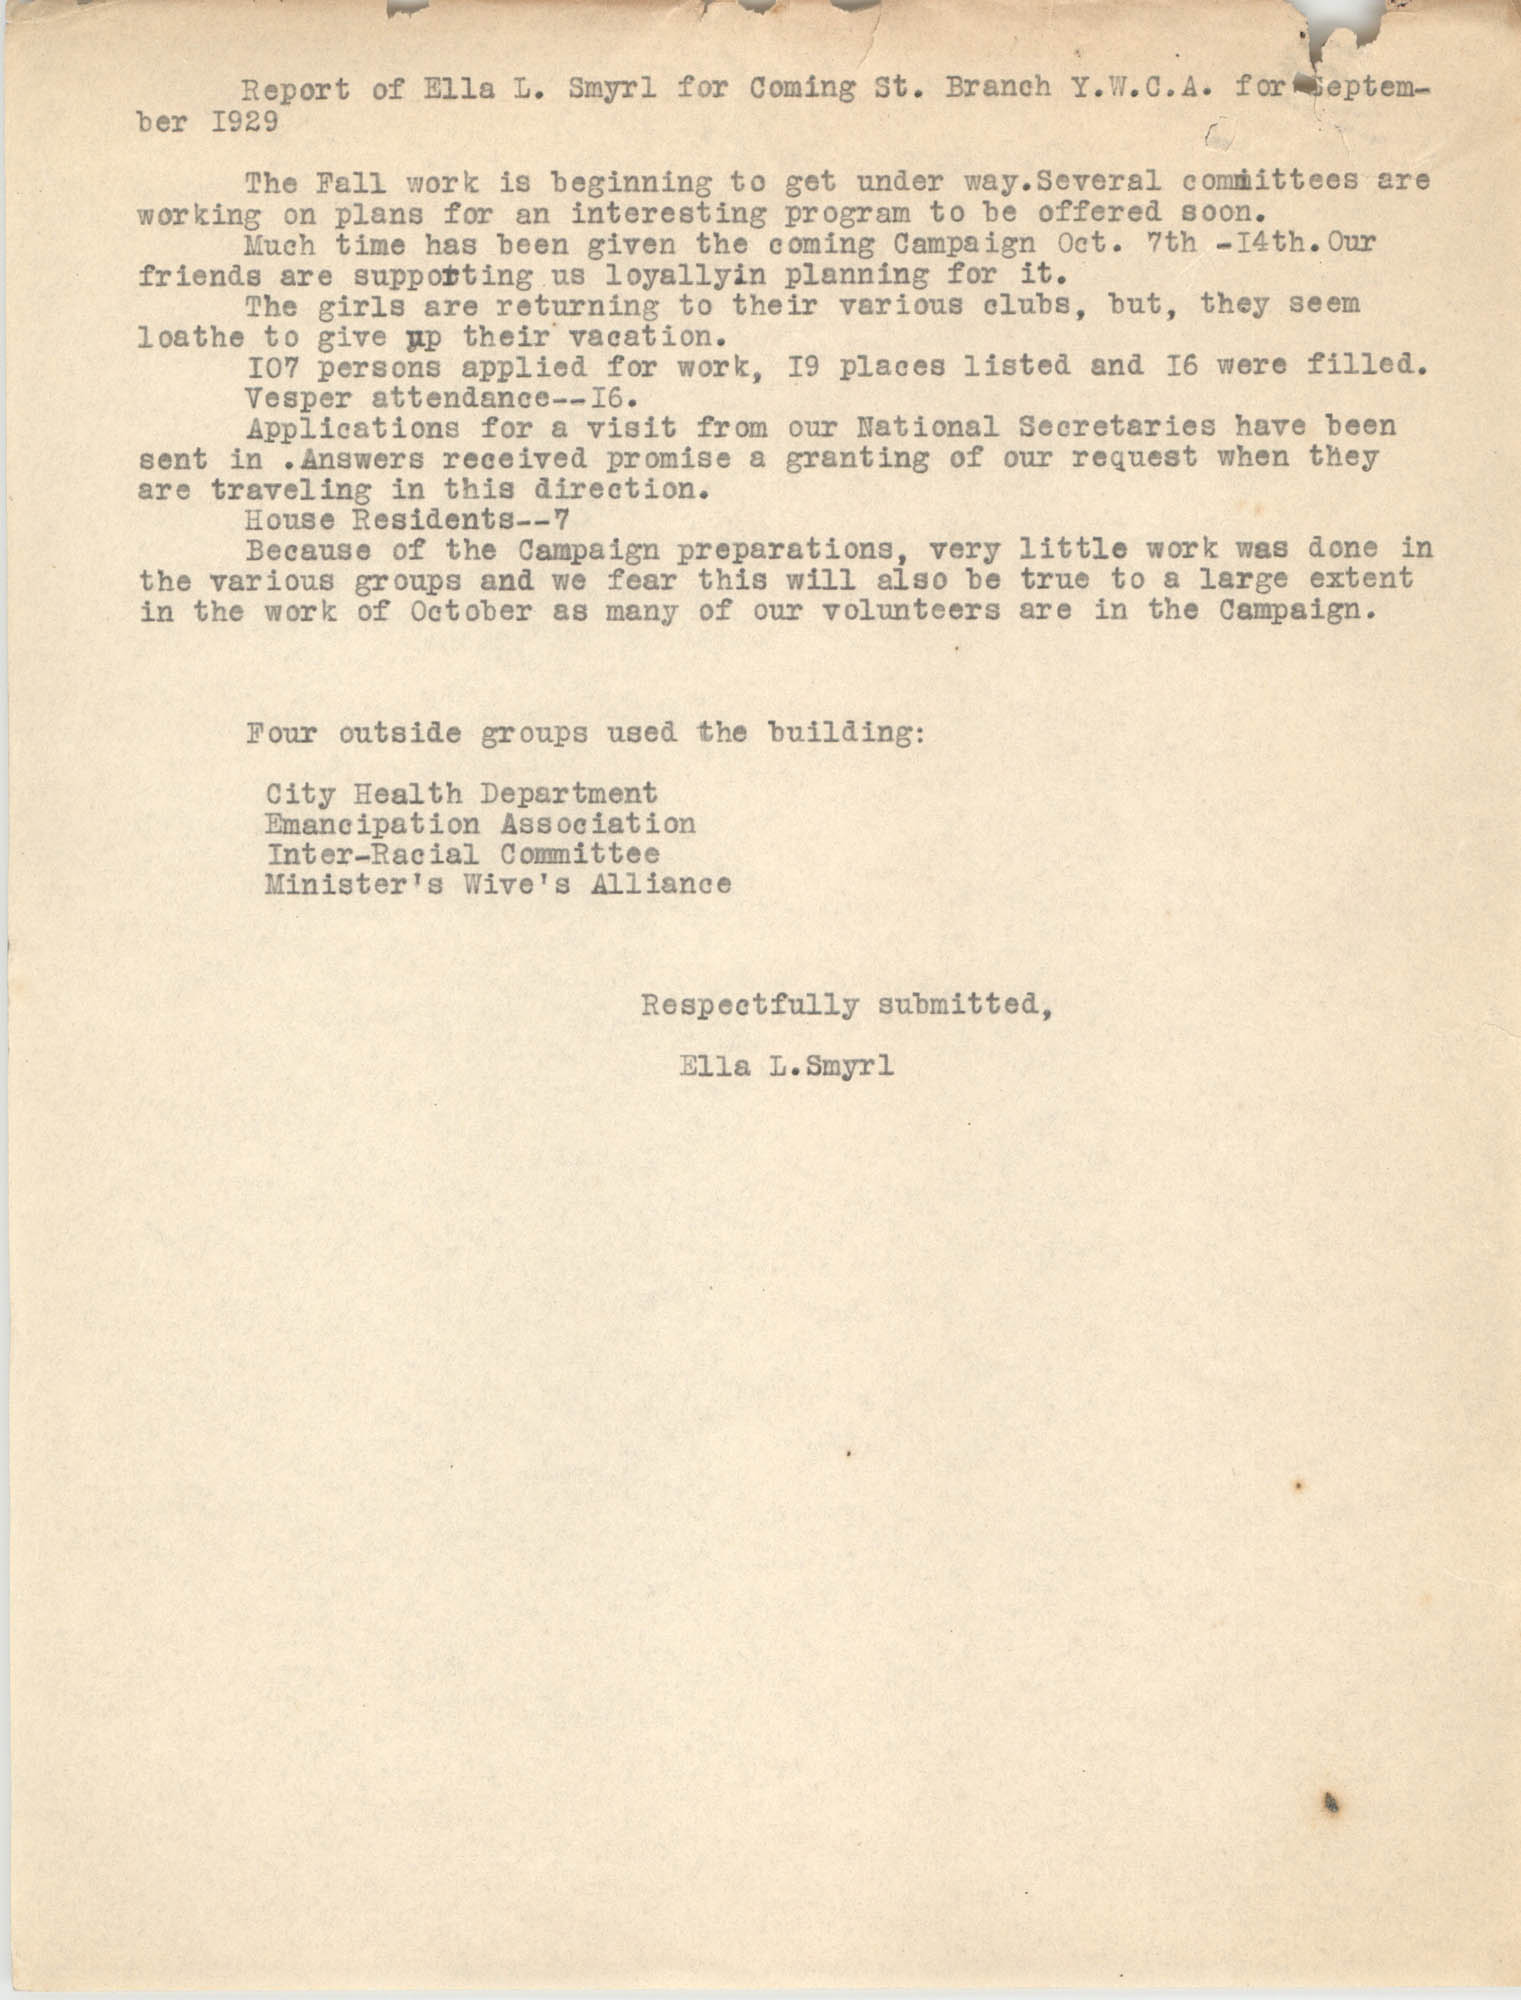 Monthly Report for the Coming Street Y.W.C.A., September 1929